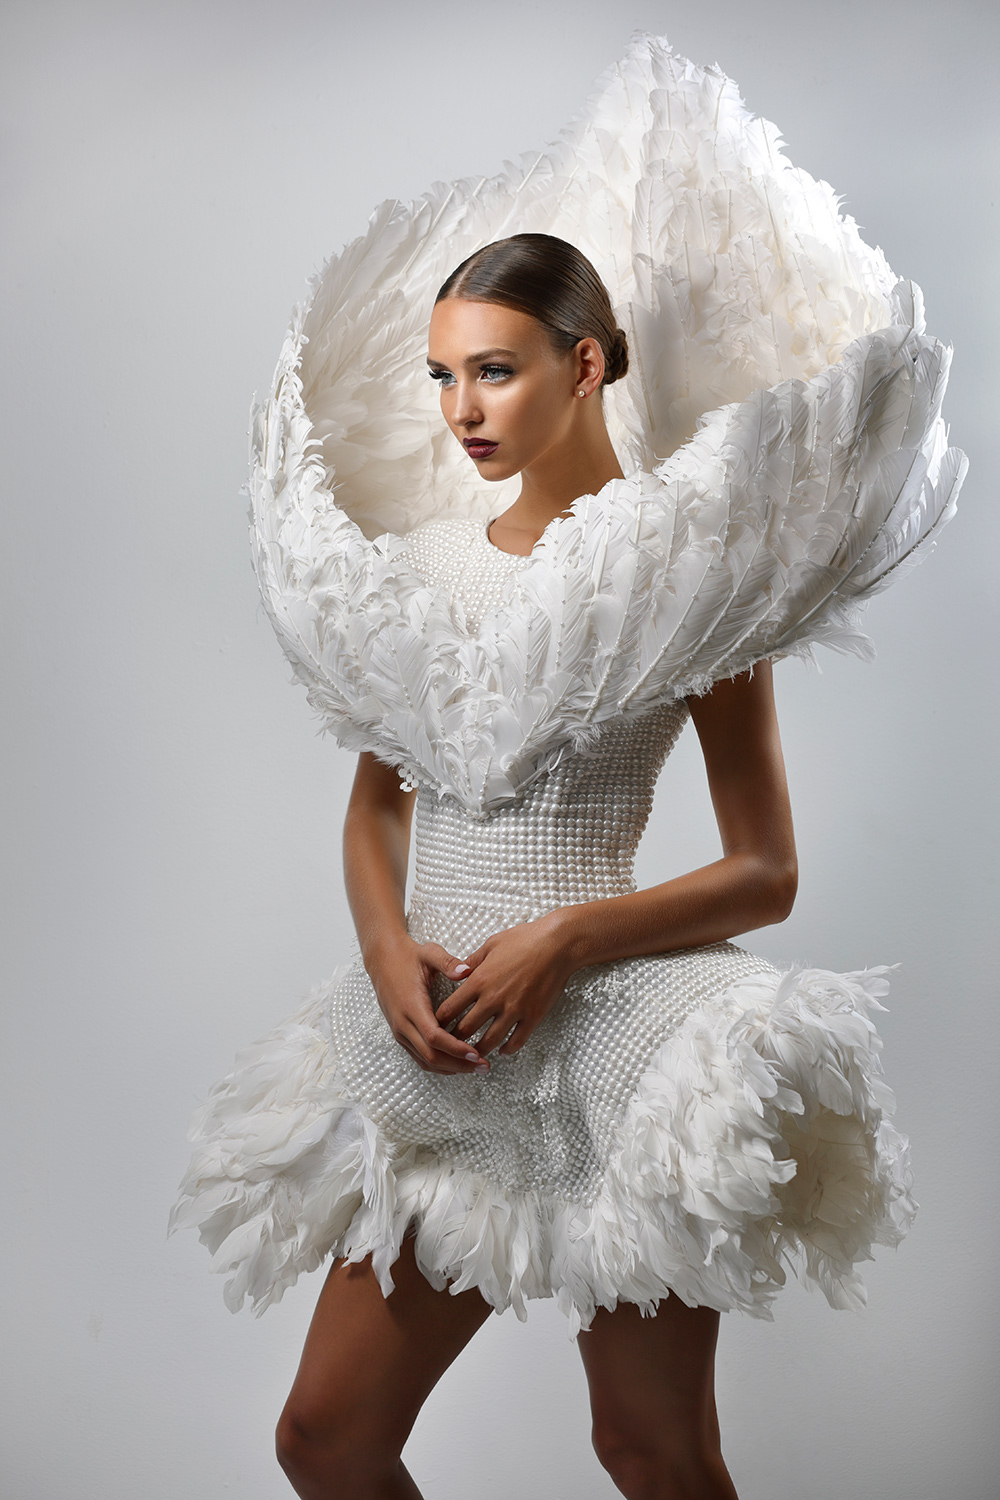 Canon Explorers of Light – Q&A with Photographer Roberto Valenzuela Fashion photography example of Woman with feathers